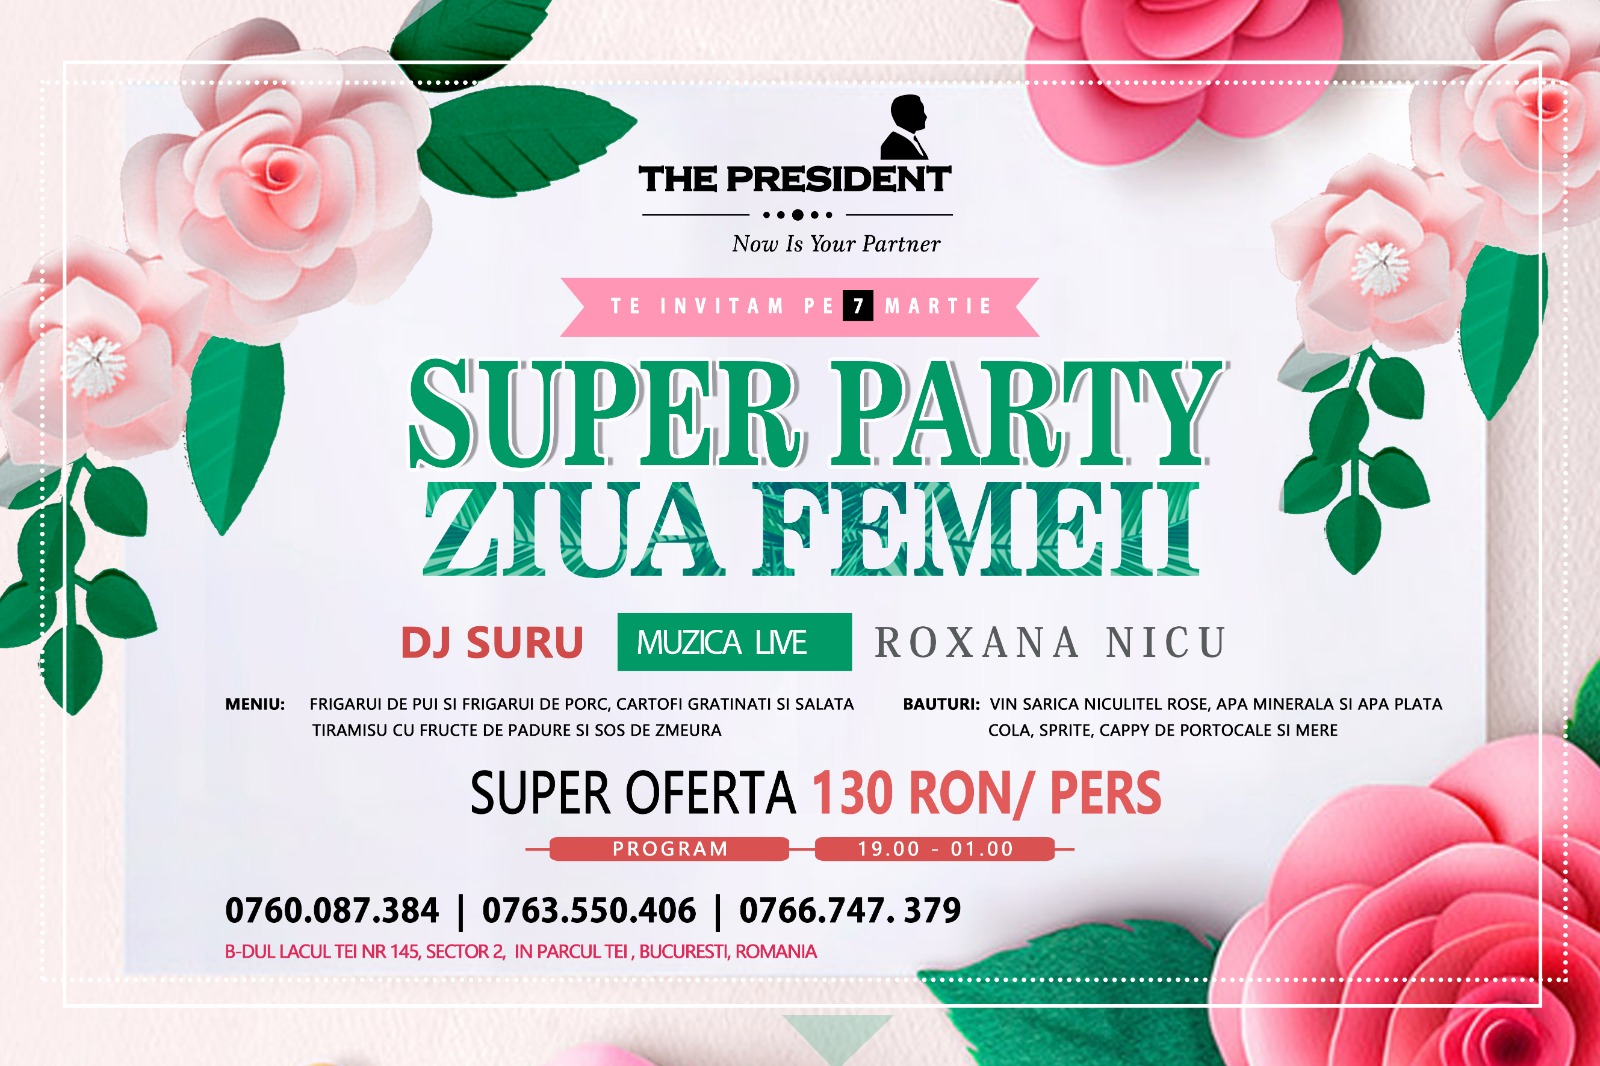 Super Party la The President2